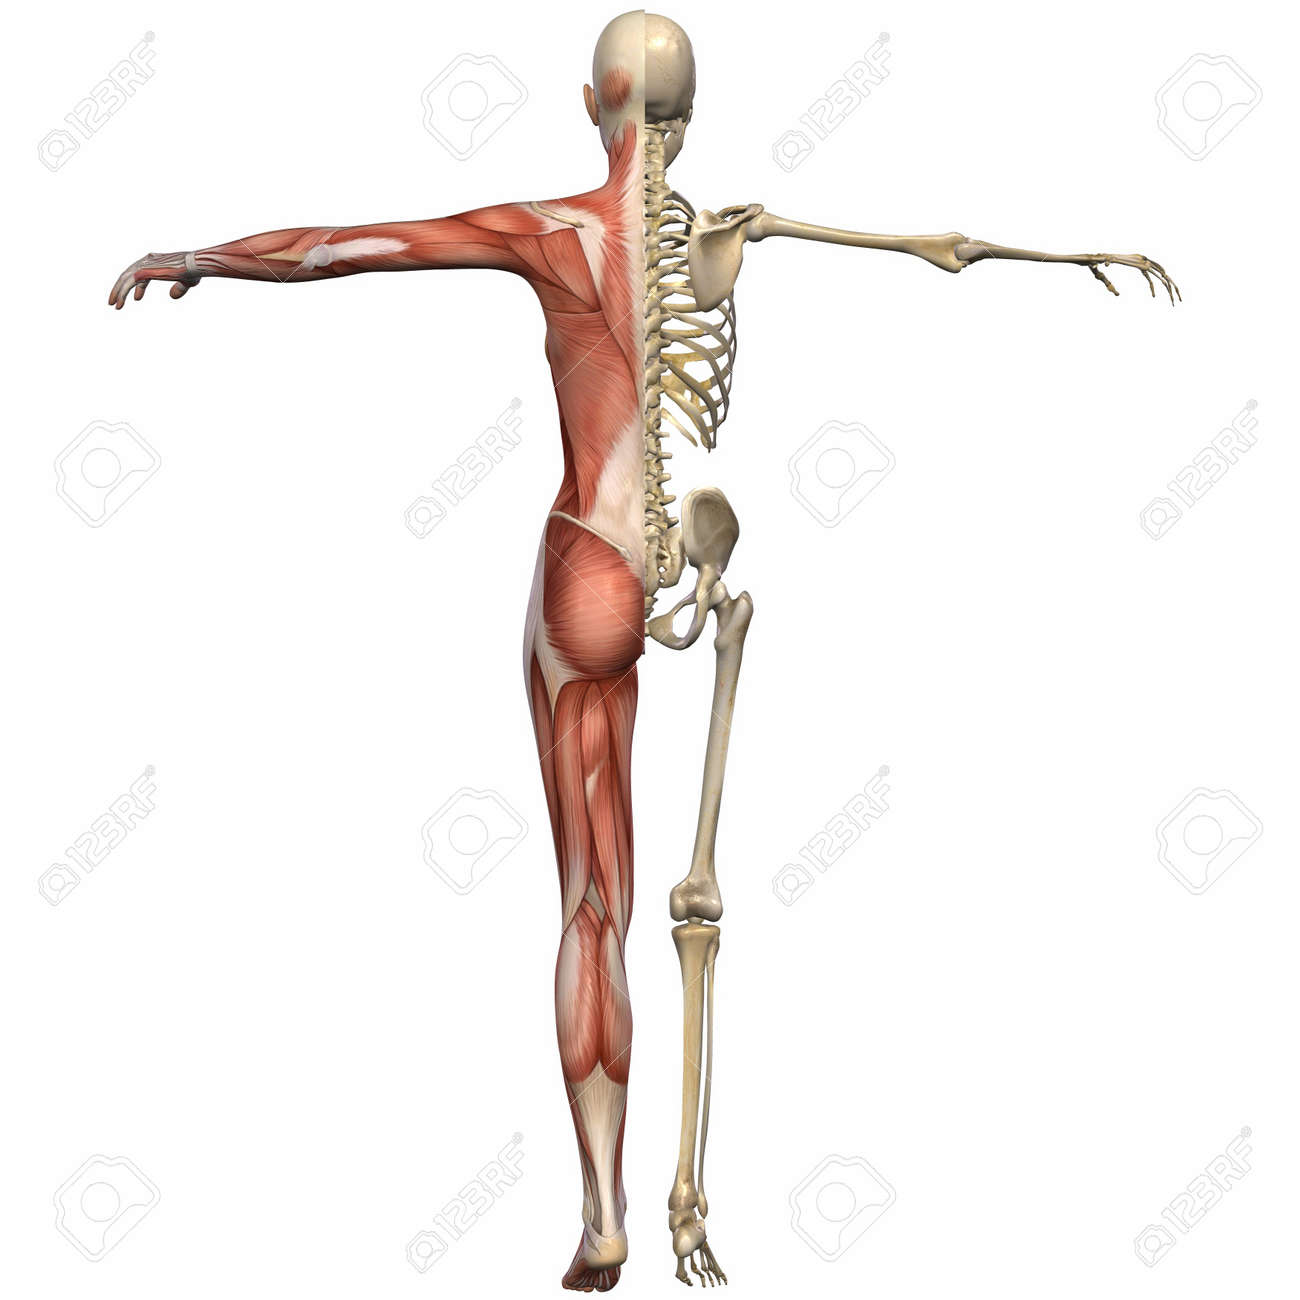 female anatomy body stock photo, picture and royalty free image, Muscles